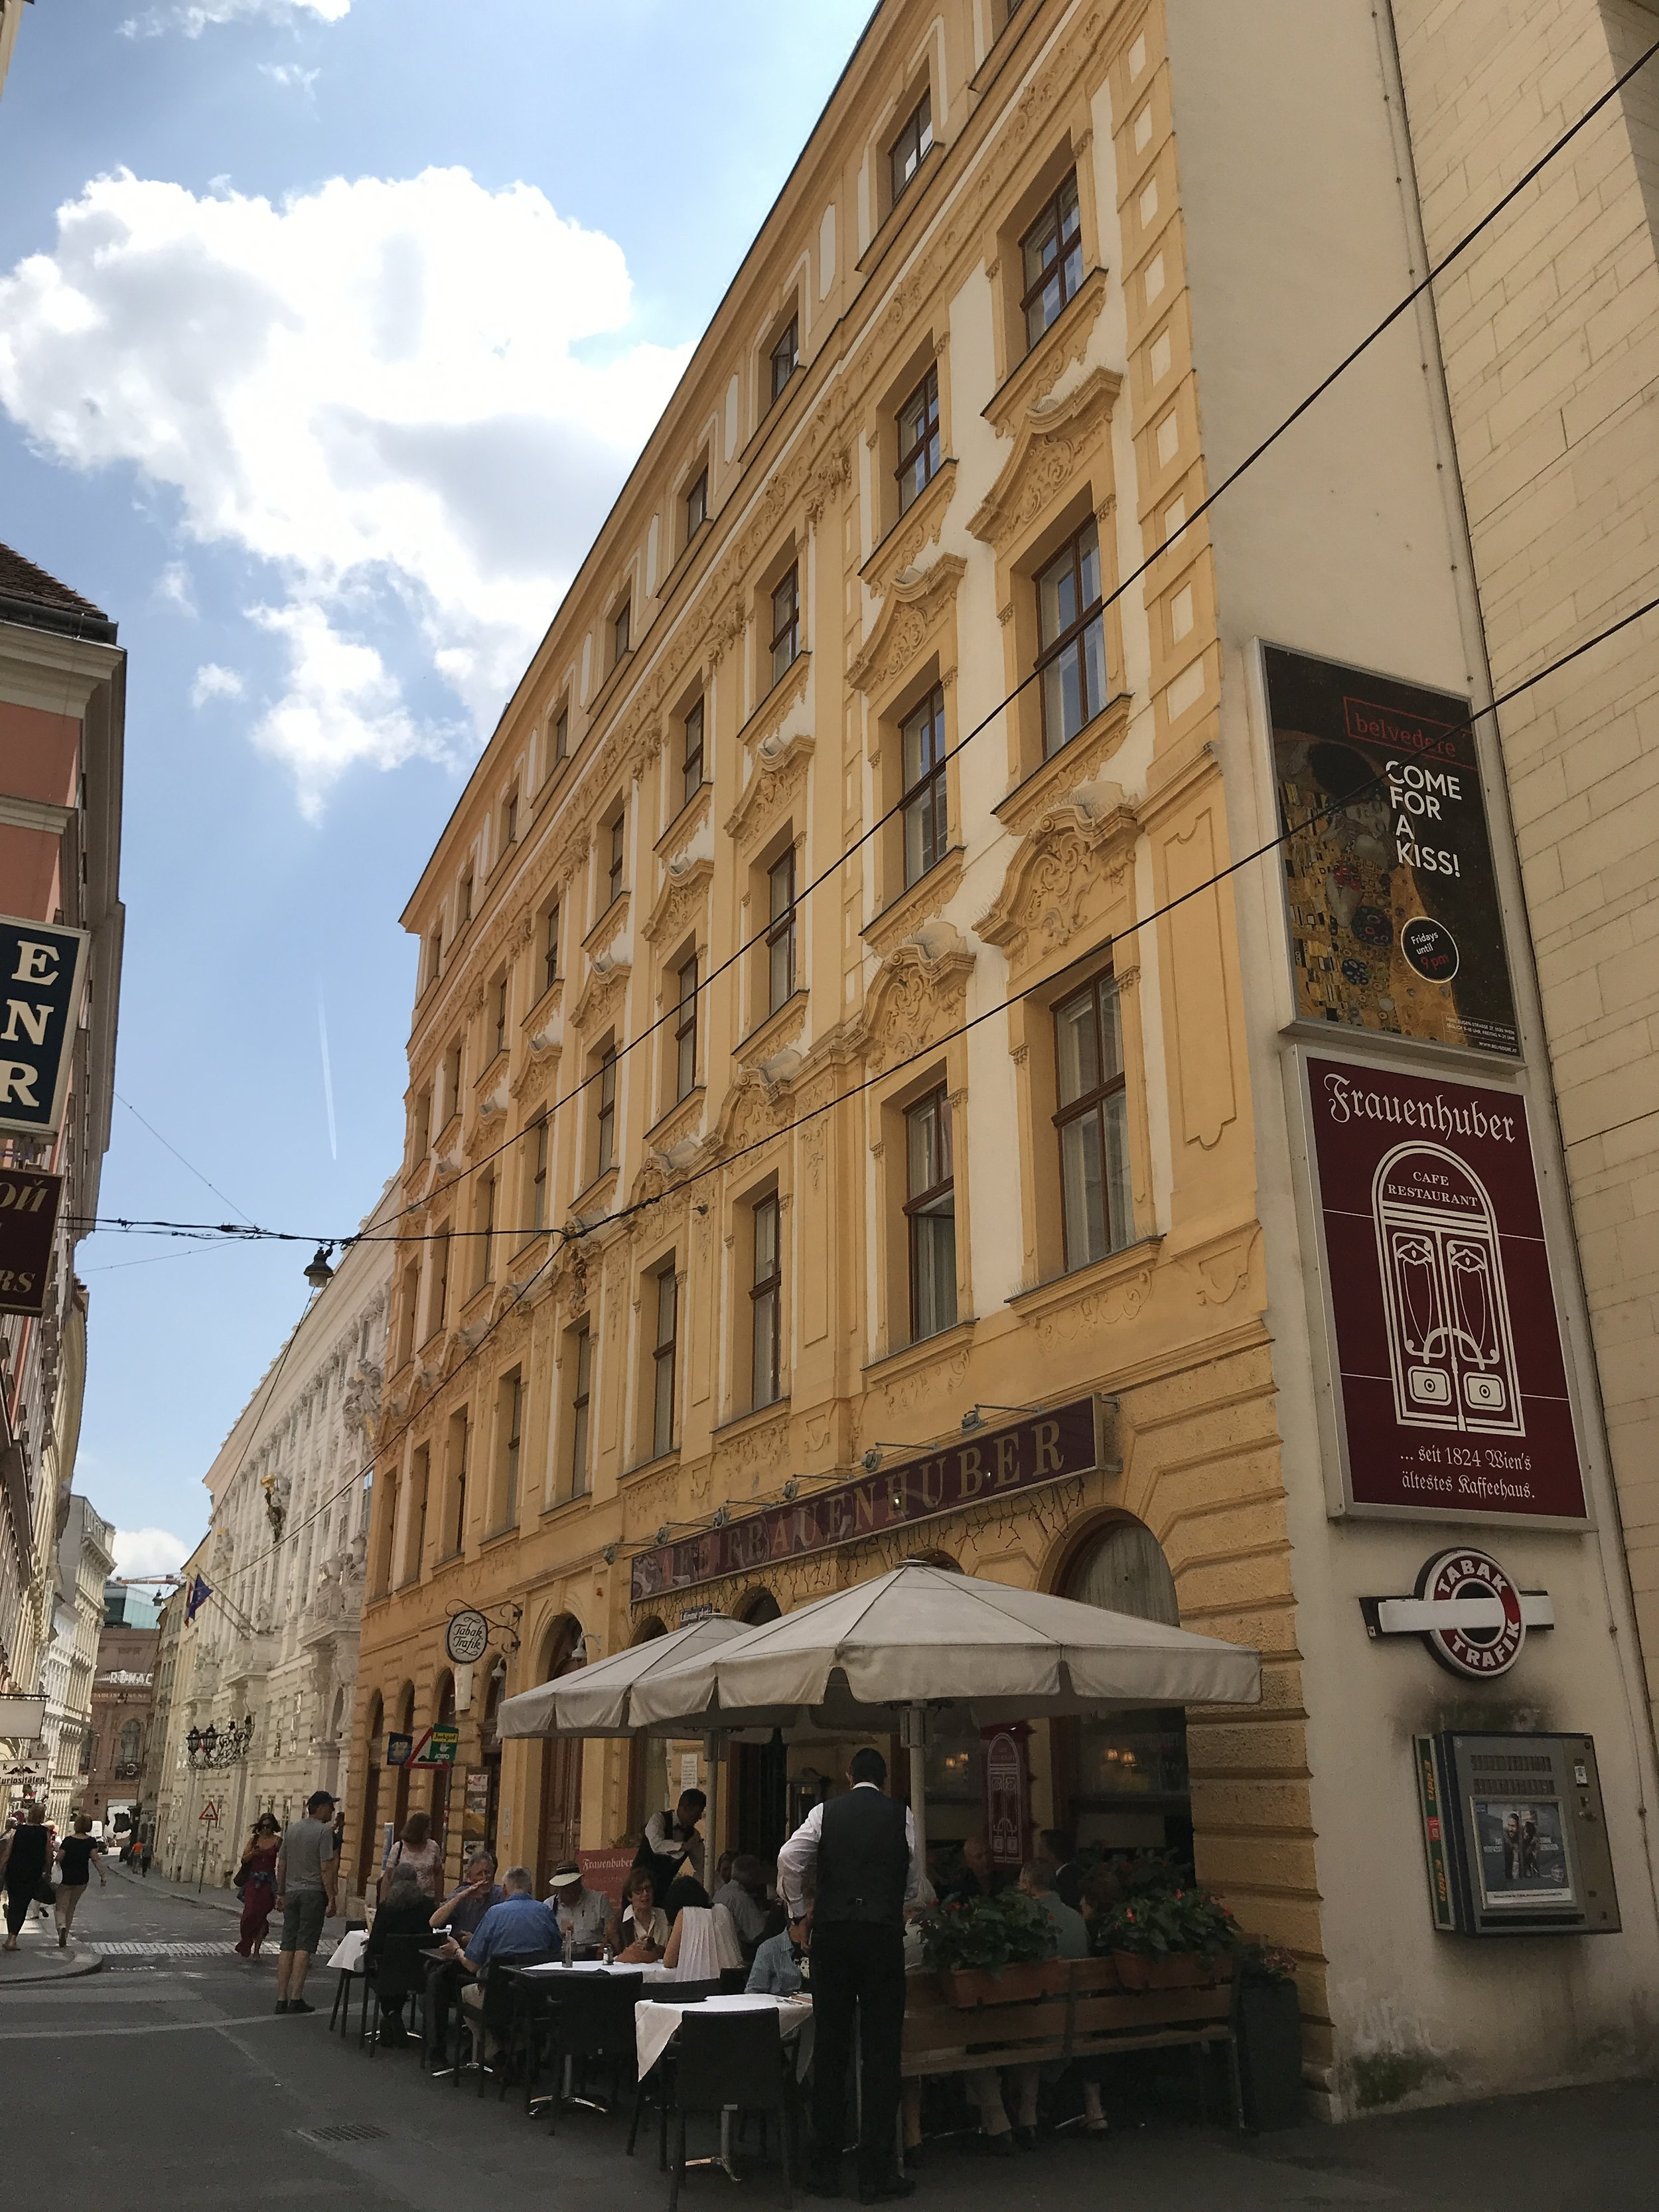 The tour guide shows us Café Frauenhuber, the oldest cafe in Vienna. Both Mozart and Beethoven have performed here before.